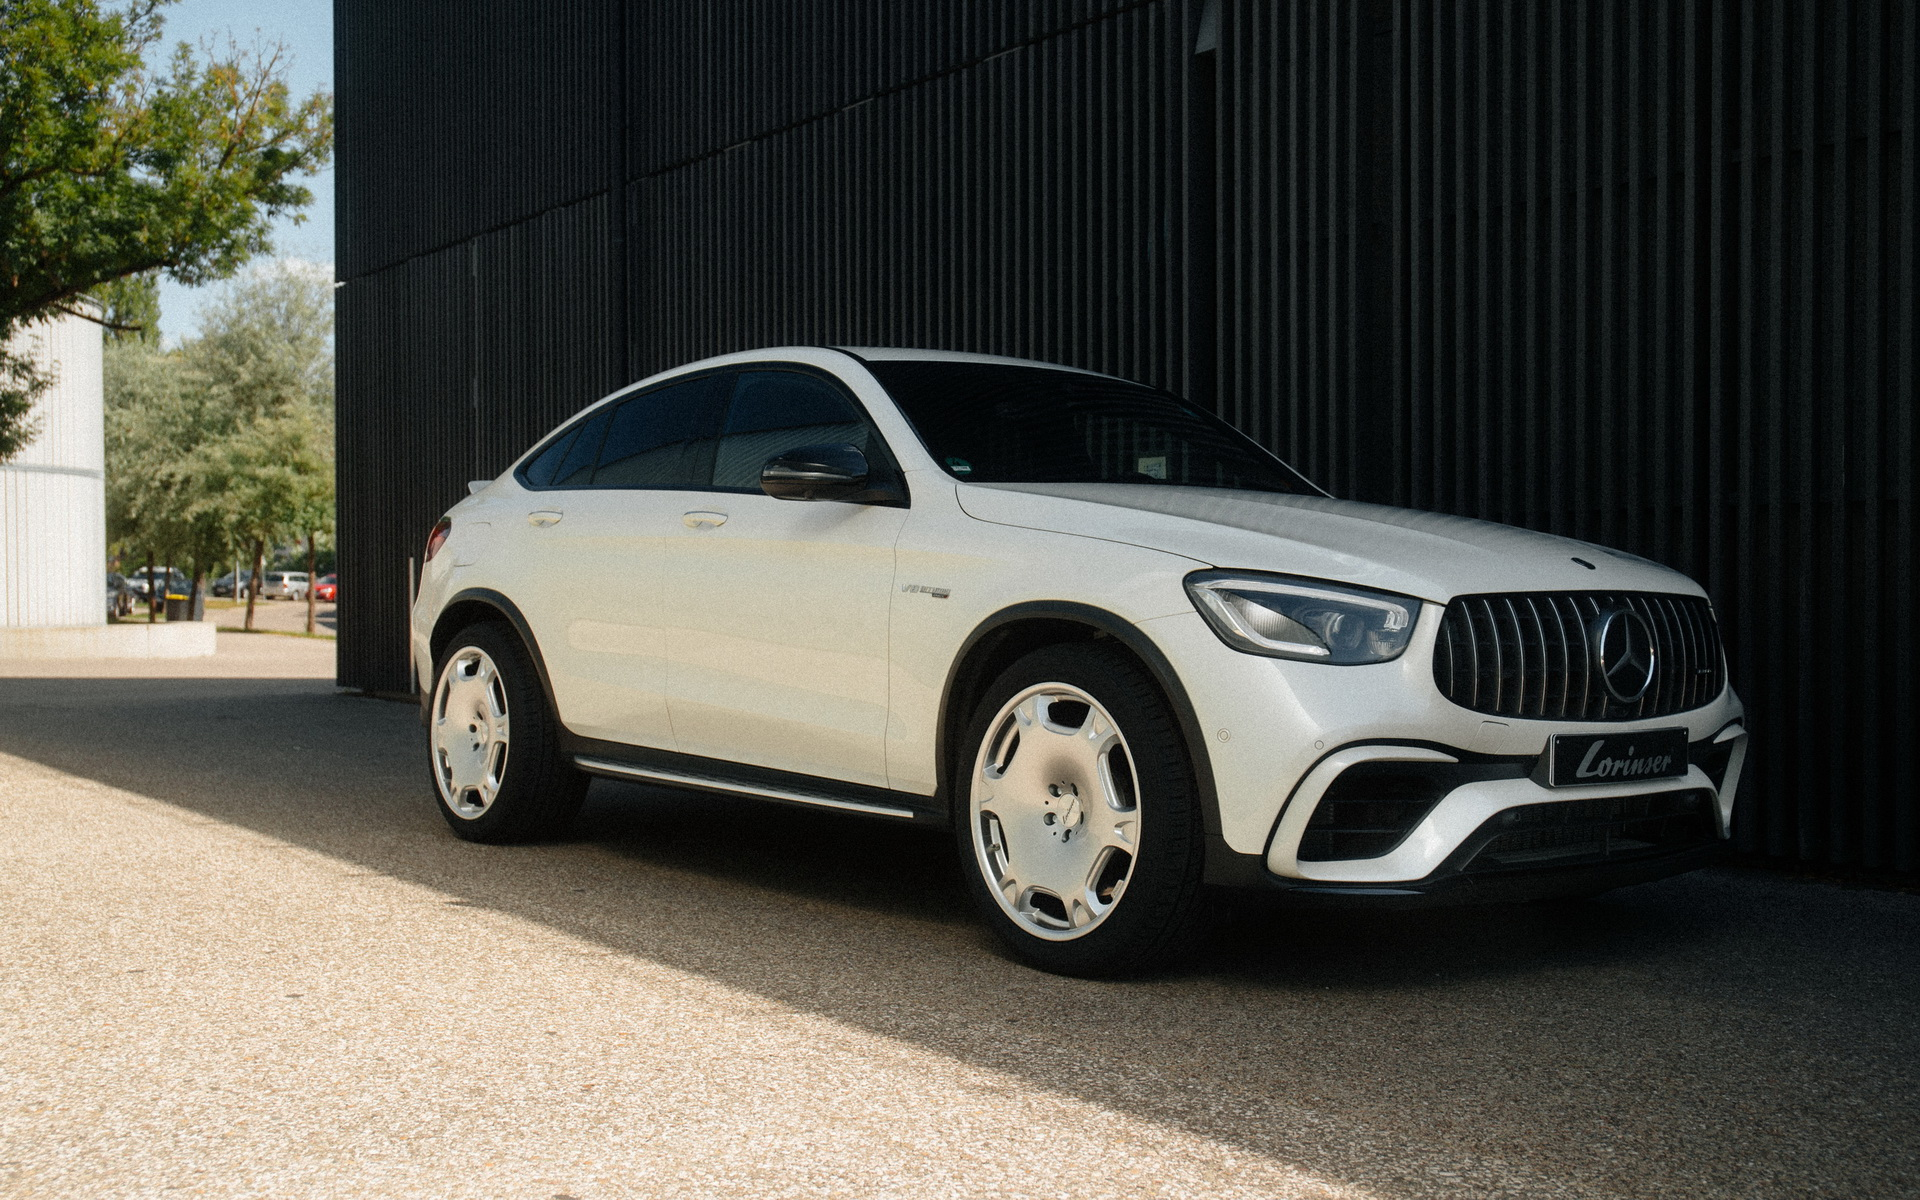 Mercedes Amg Glc 63 S Coupe By Lorinser Ugly Car Ugly Wheels More Power